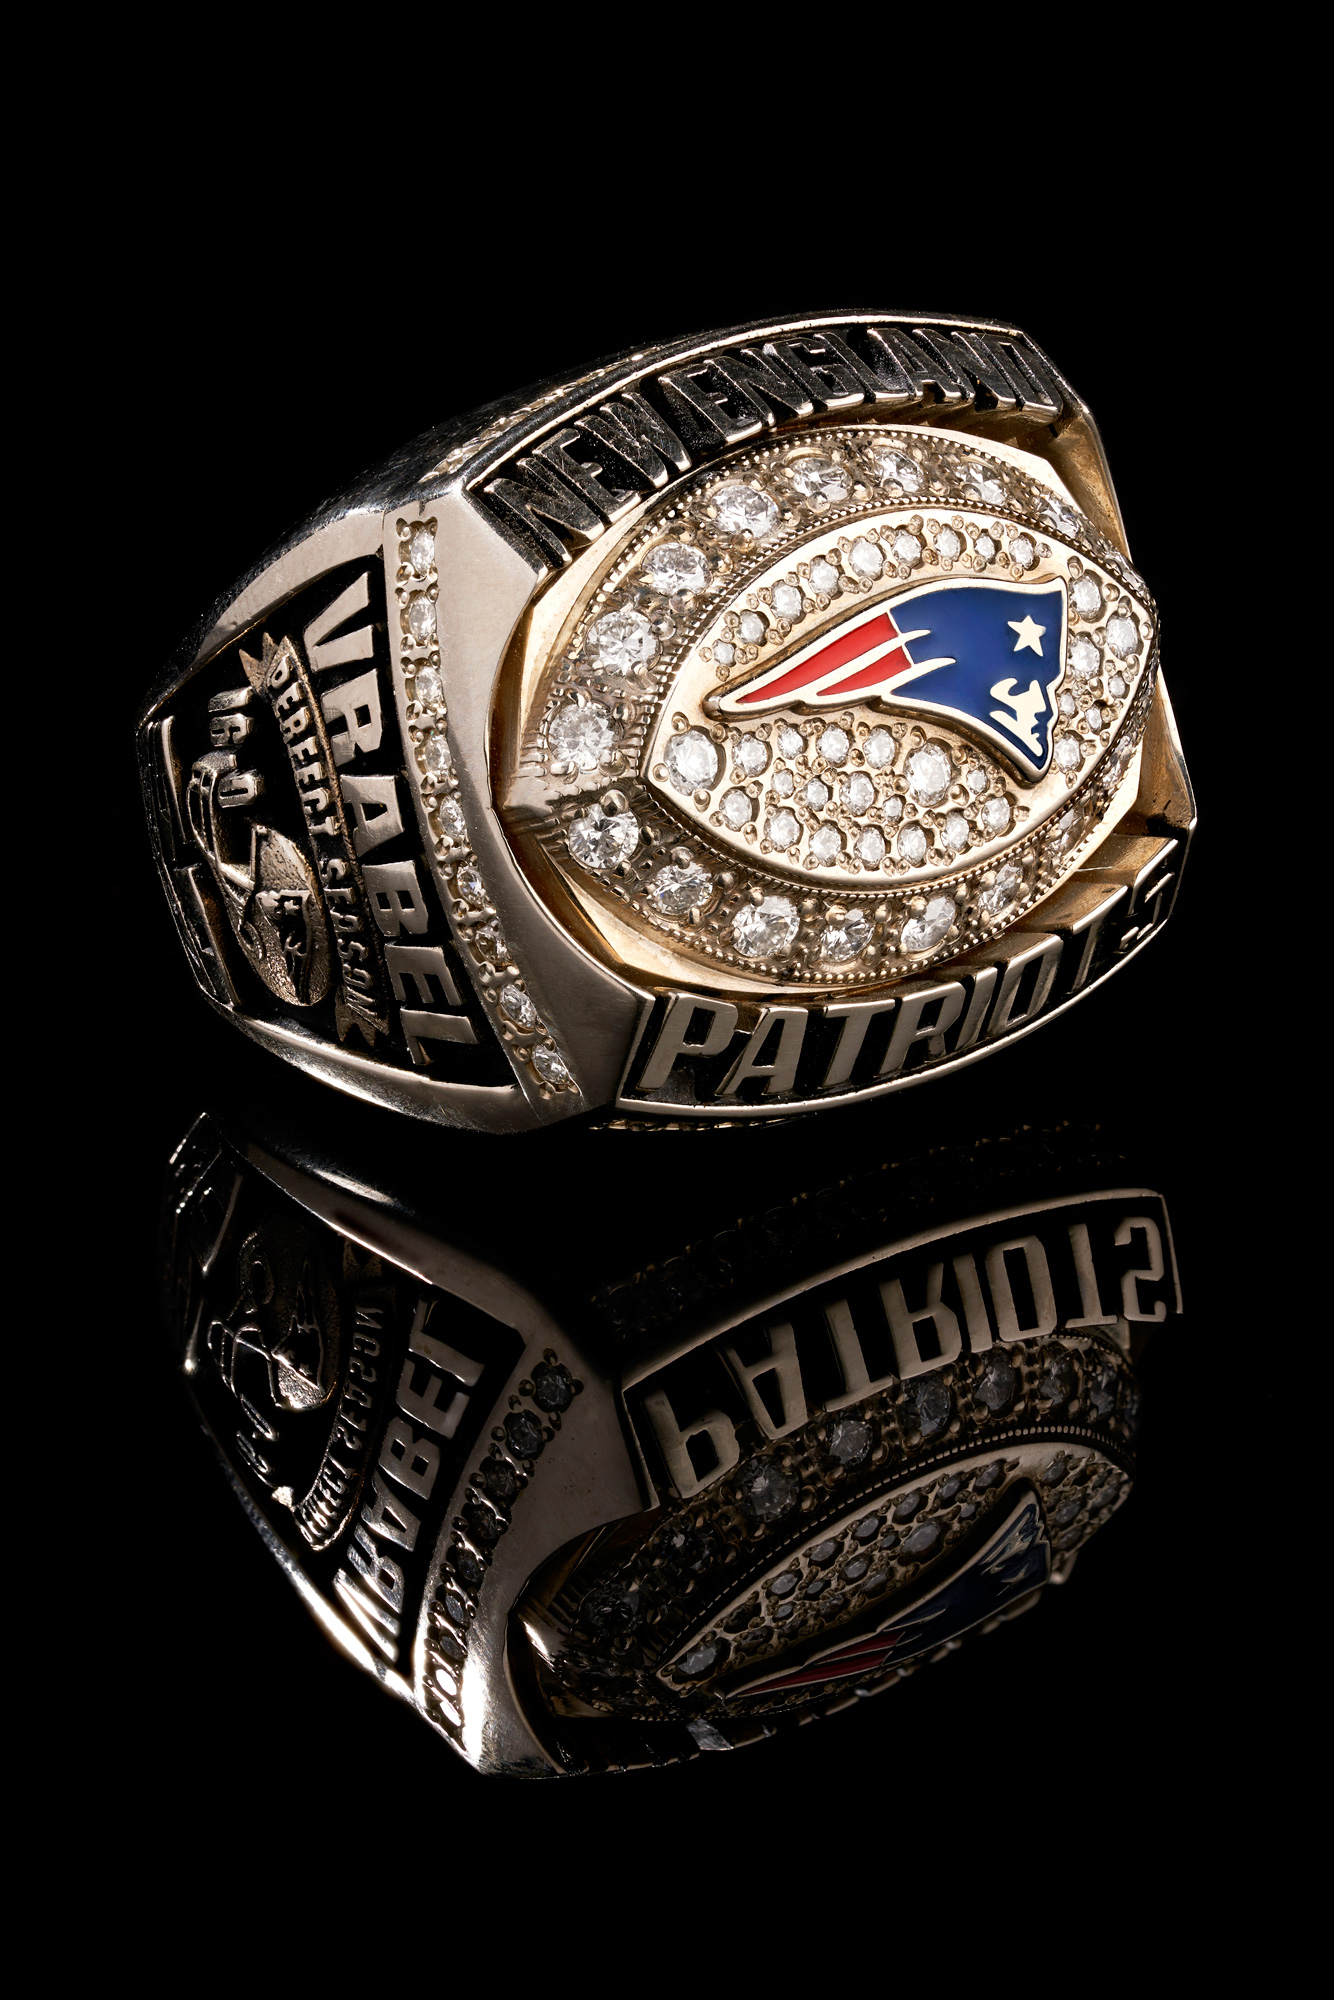 Product-Photograph-of-Super-Bowl-Rings-by-Architectural,-Interior,-and-Product-Photographer-Nick-McGinn-9.web.jpg